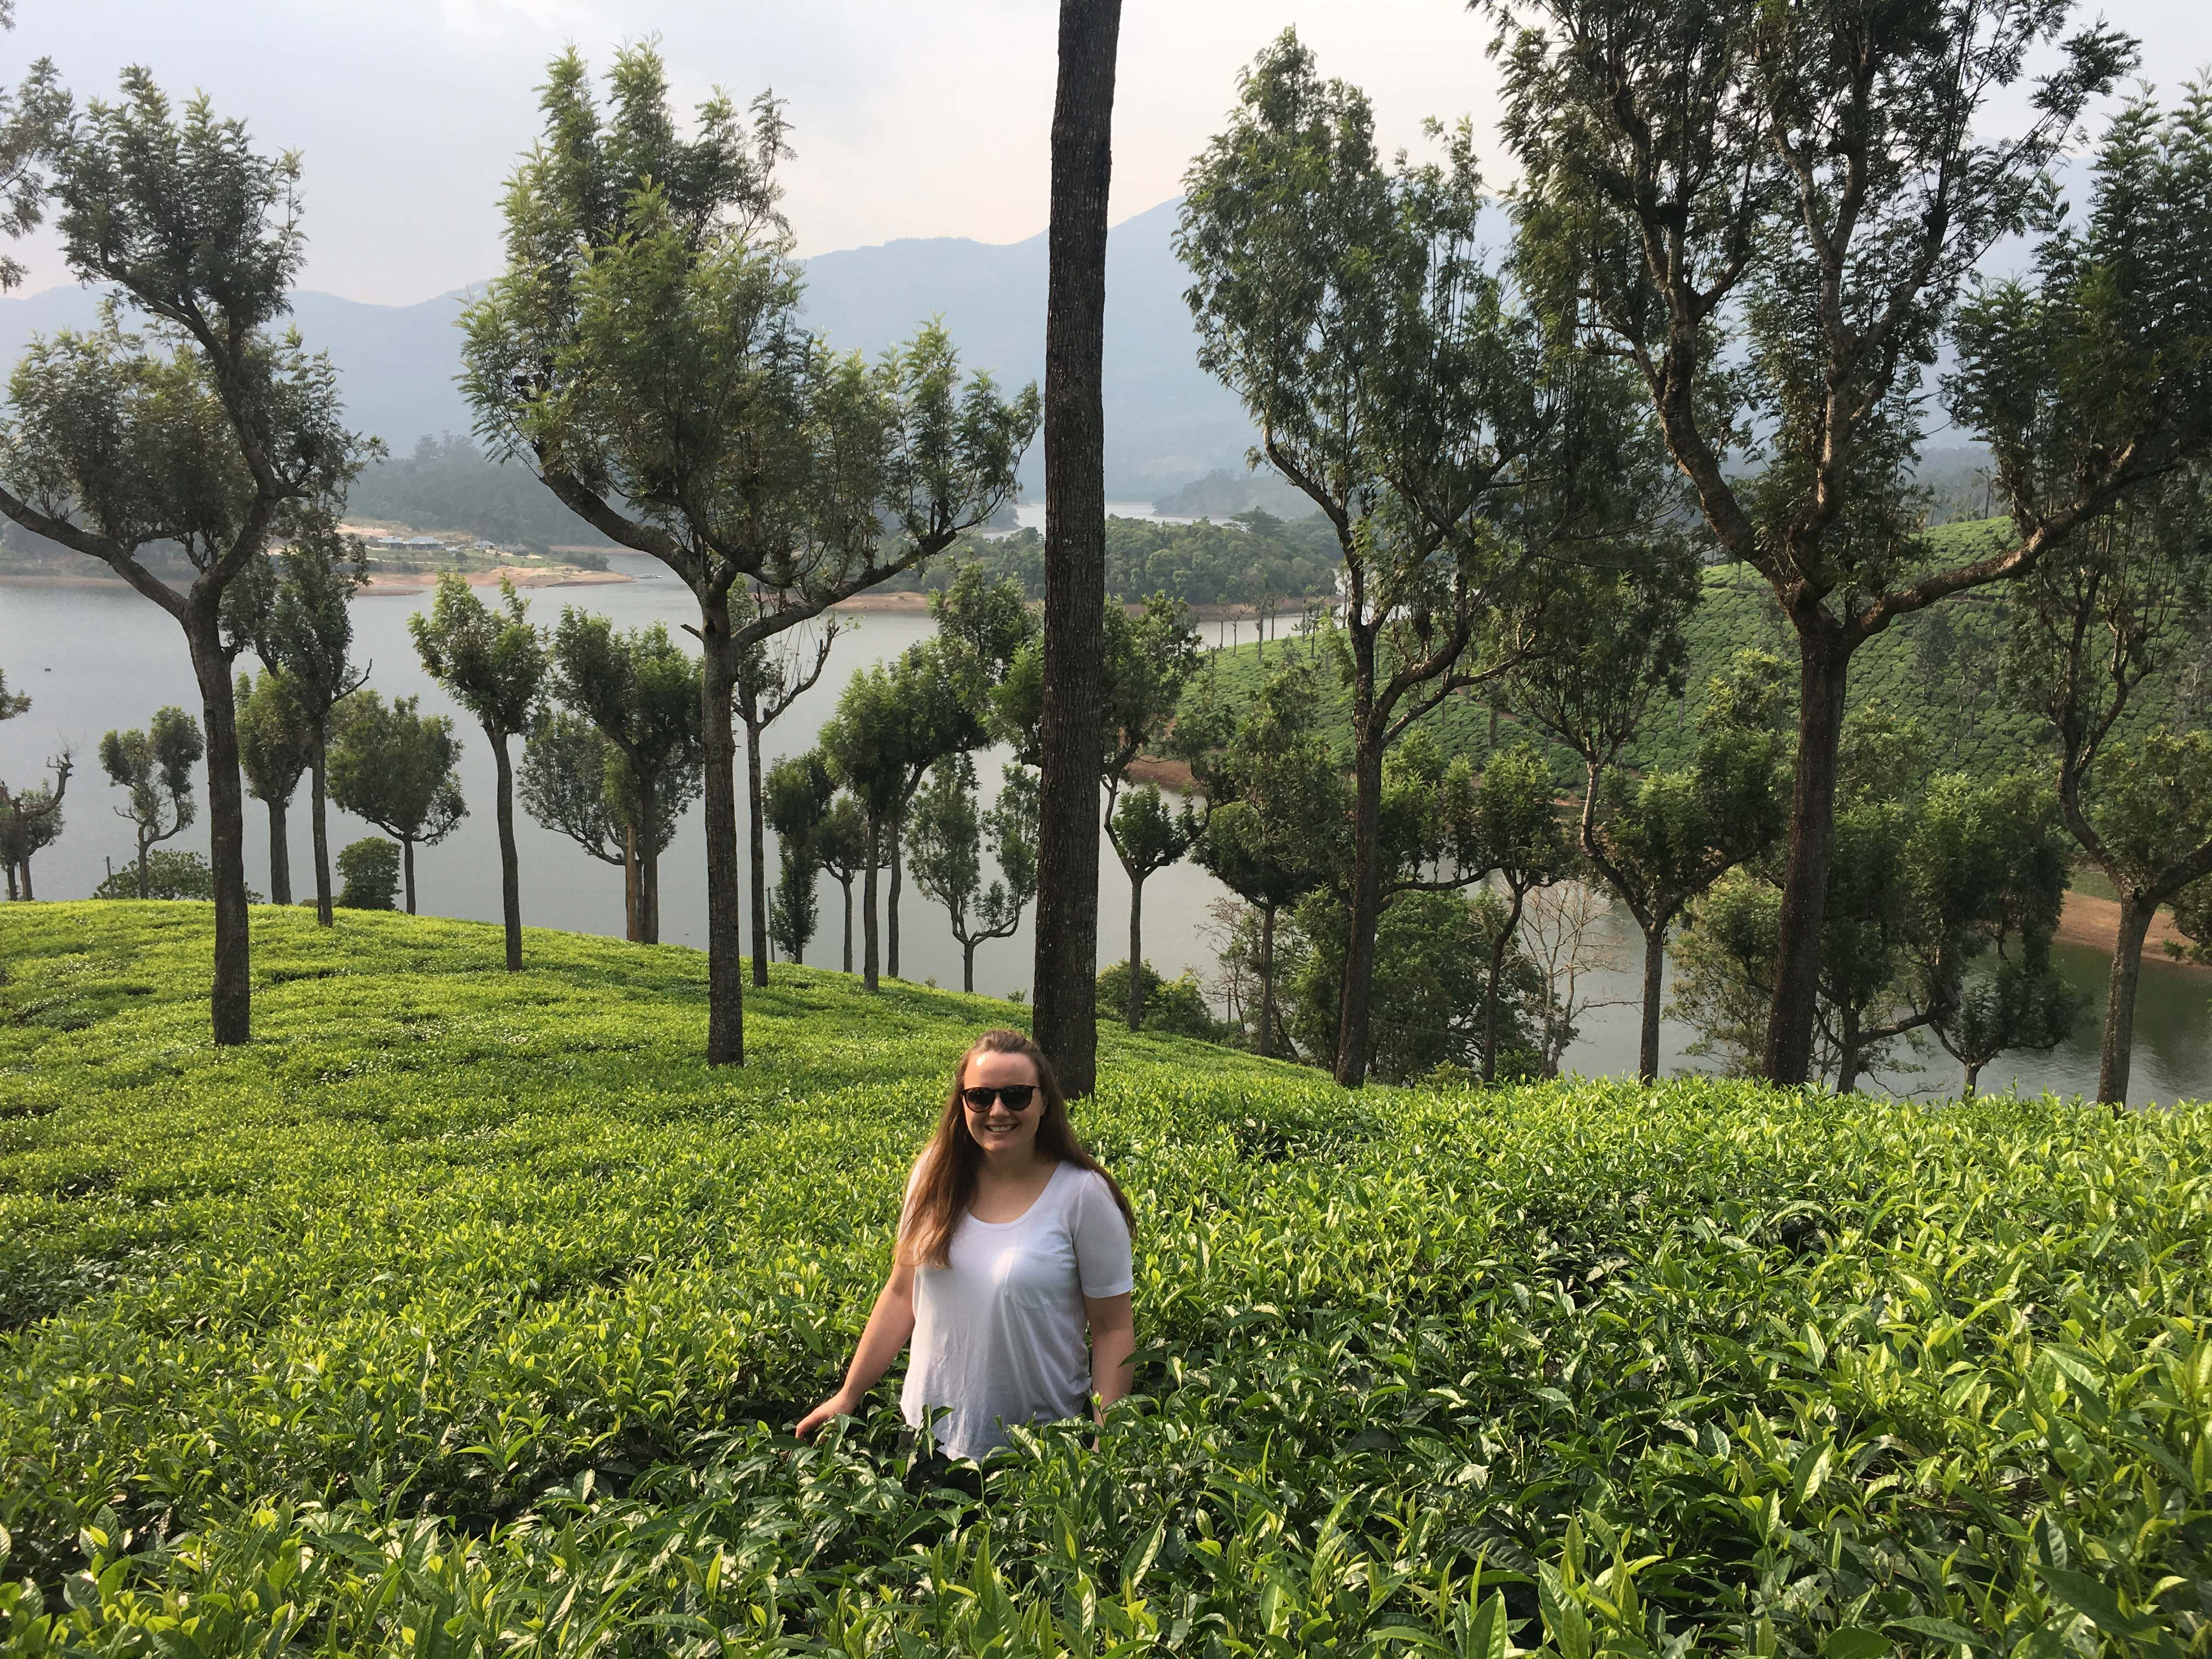 Chloe standing in the tea plantation